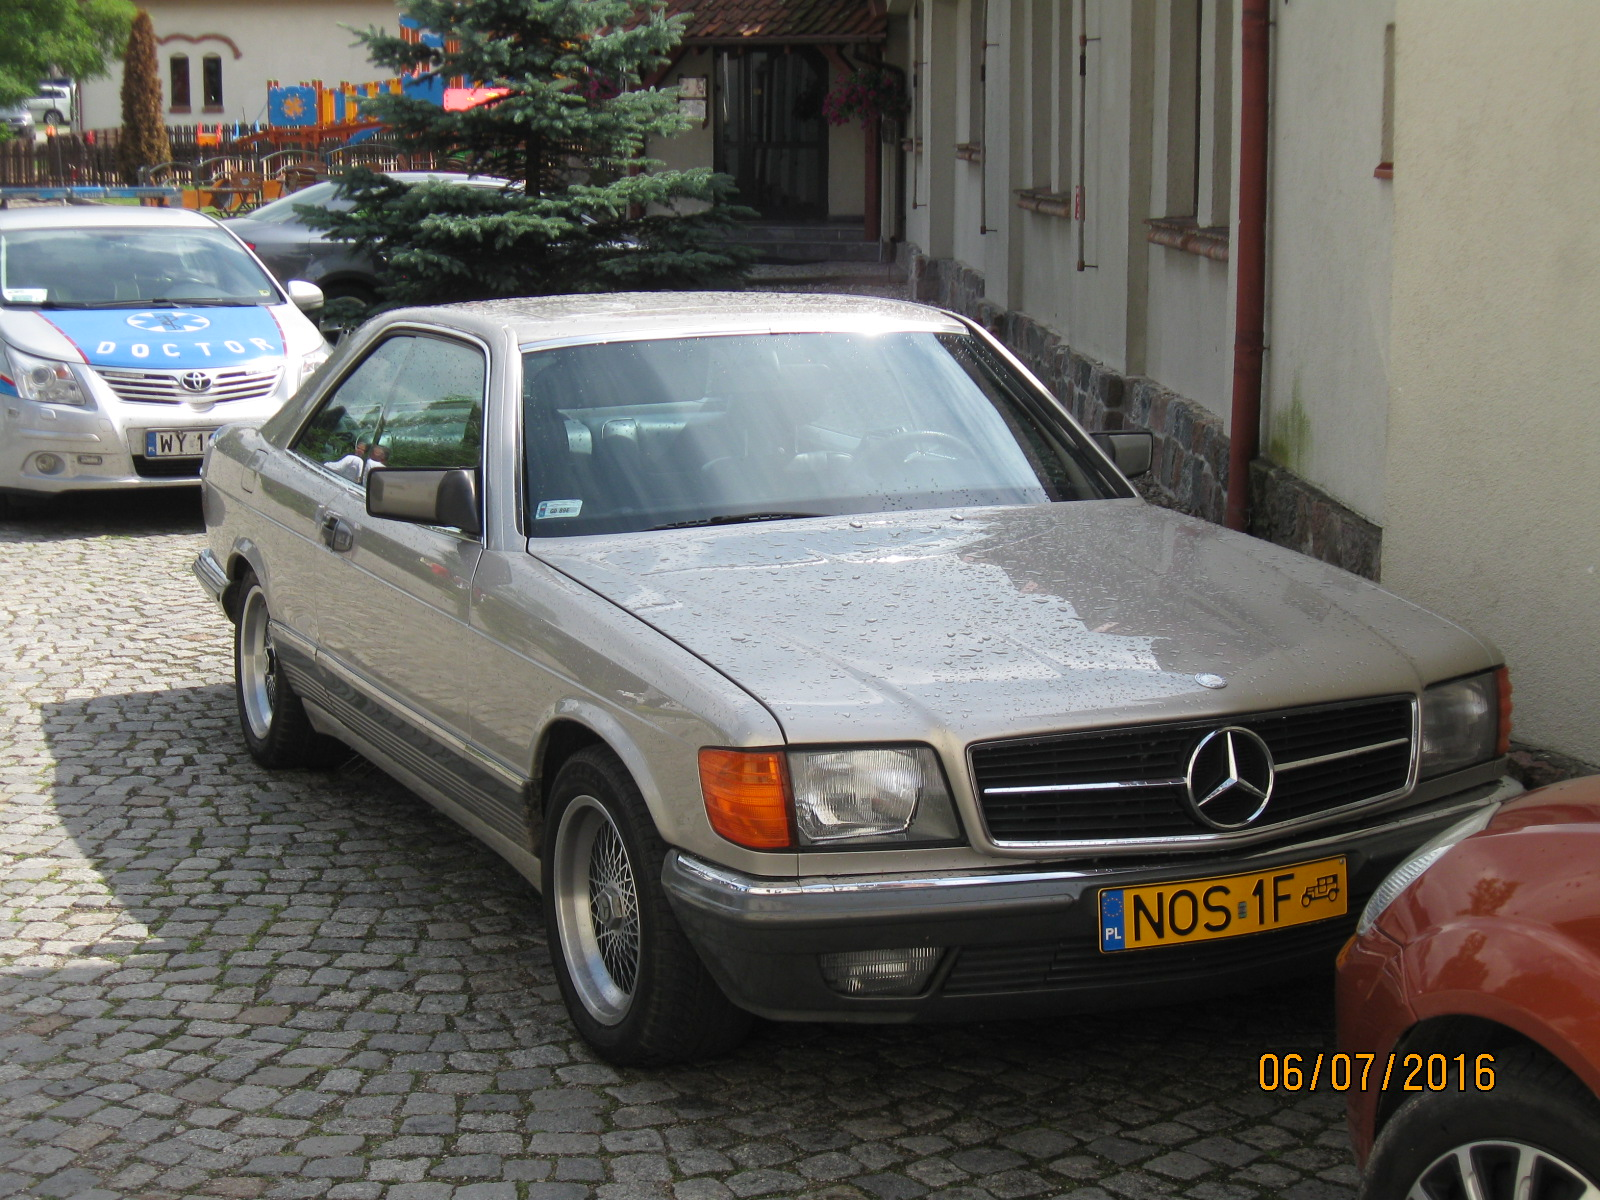 http://124coupe.pl/hosting/images/1467813696.jpg